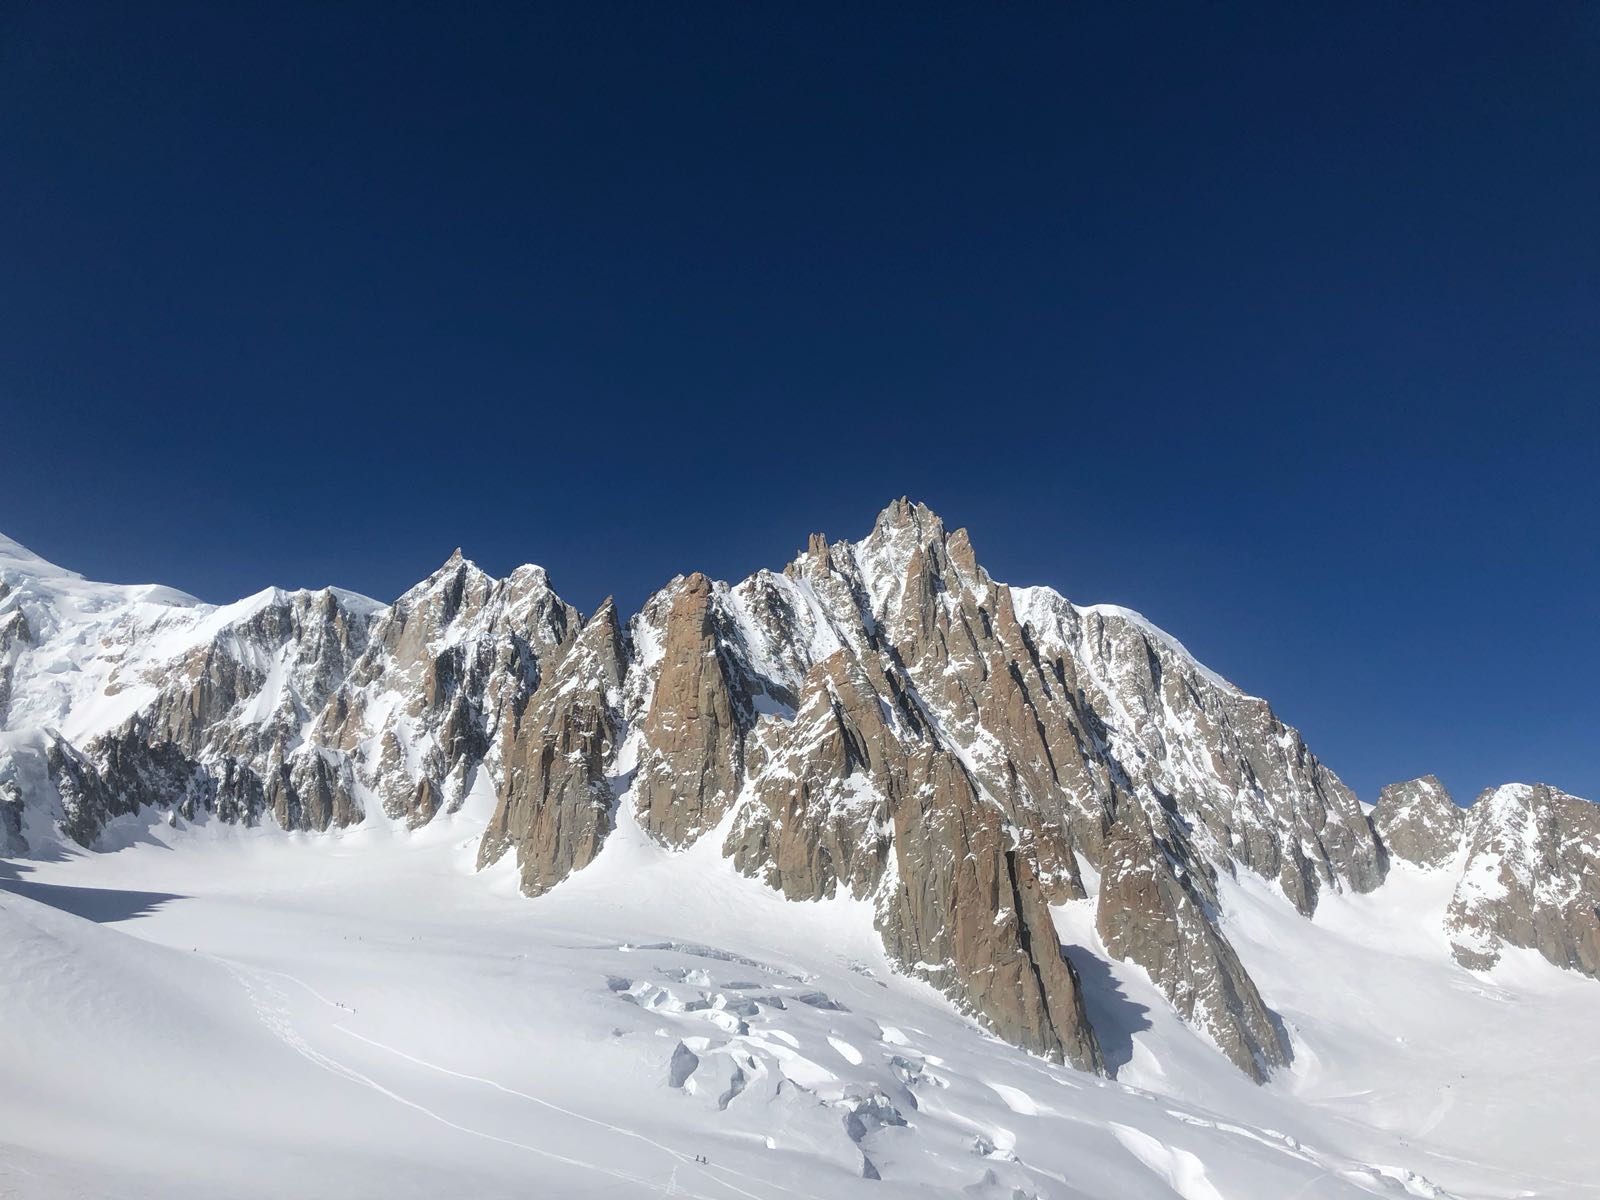 vallee blanche guide alpine proup (78)